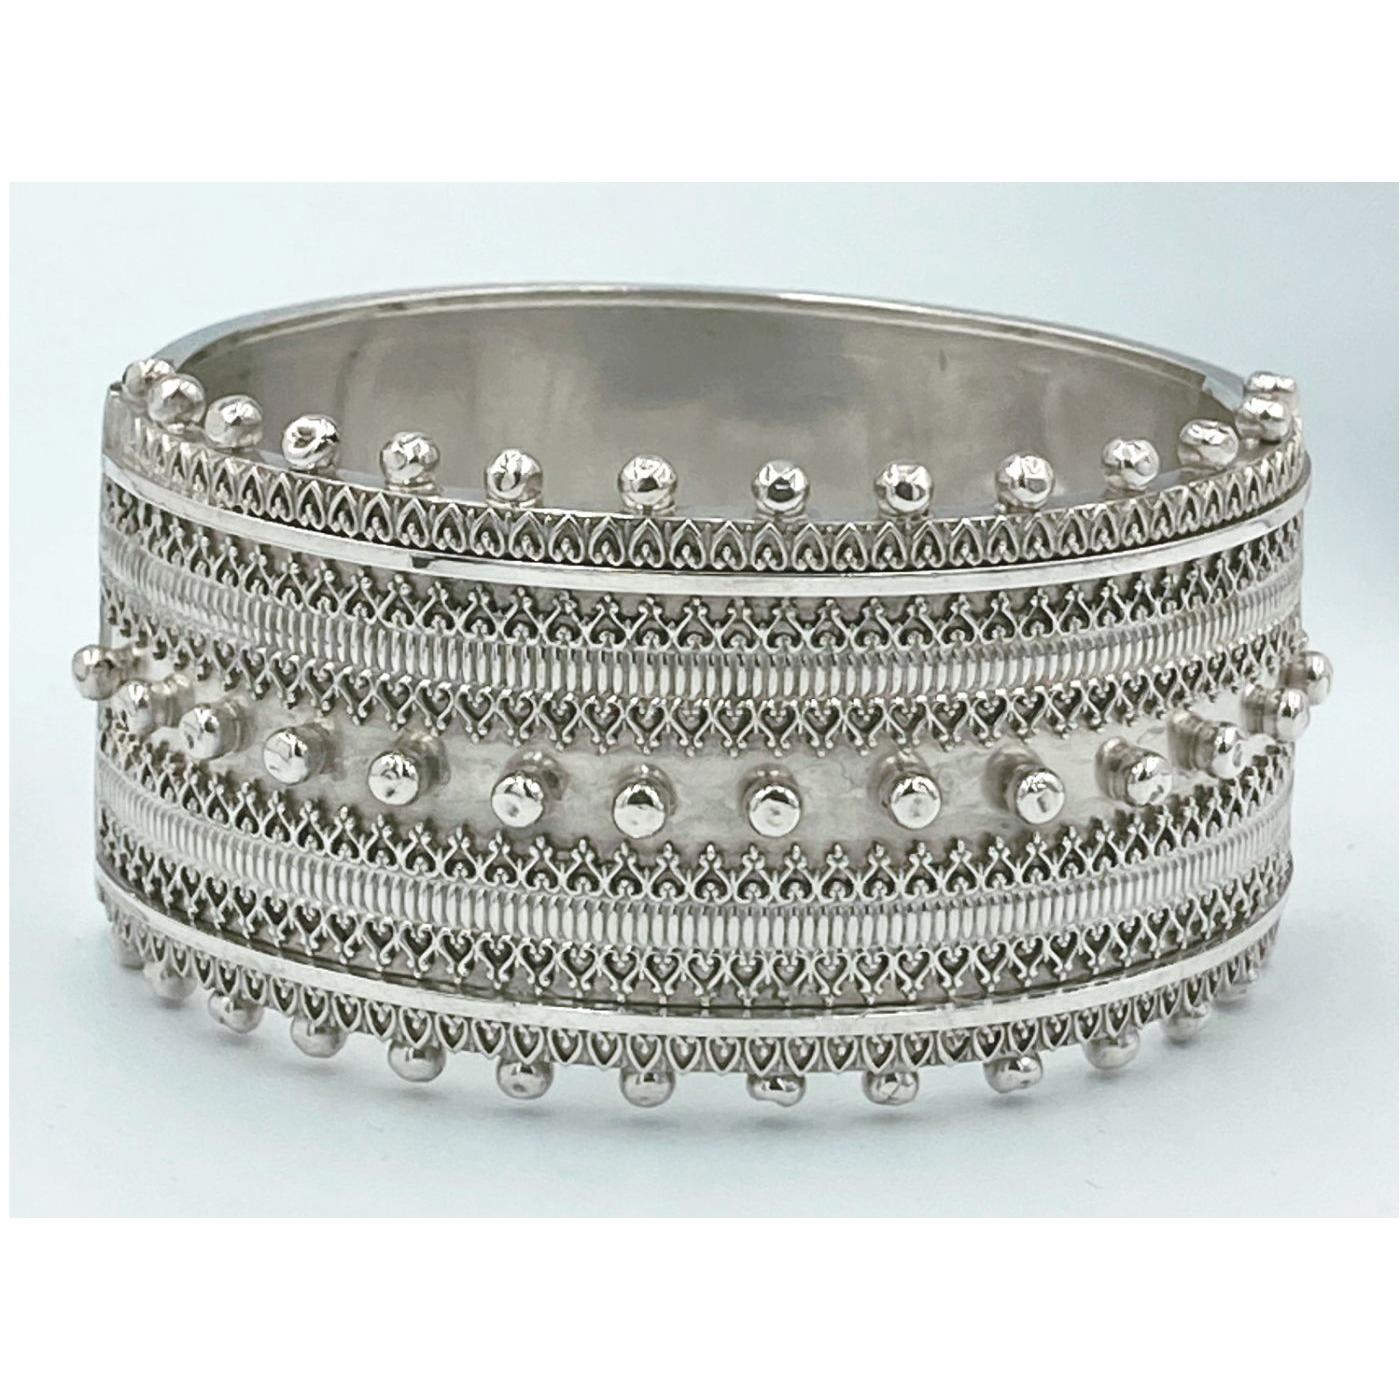 Larger Extraordinary Beaded Edge Exquisite Victorian Silver Bangle